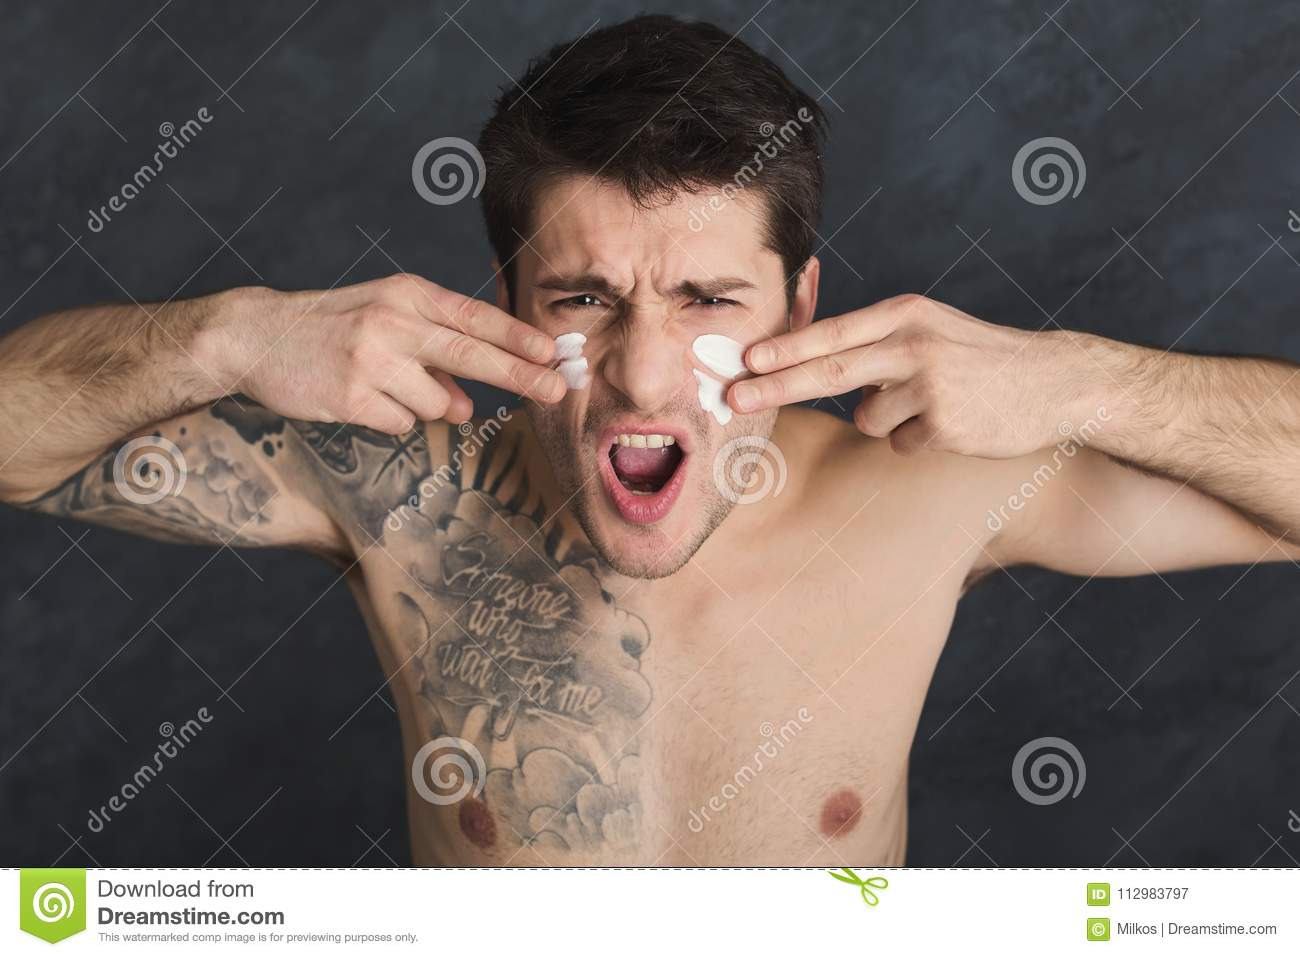 Young tattooed man put foam on face